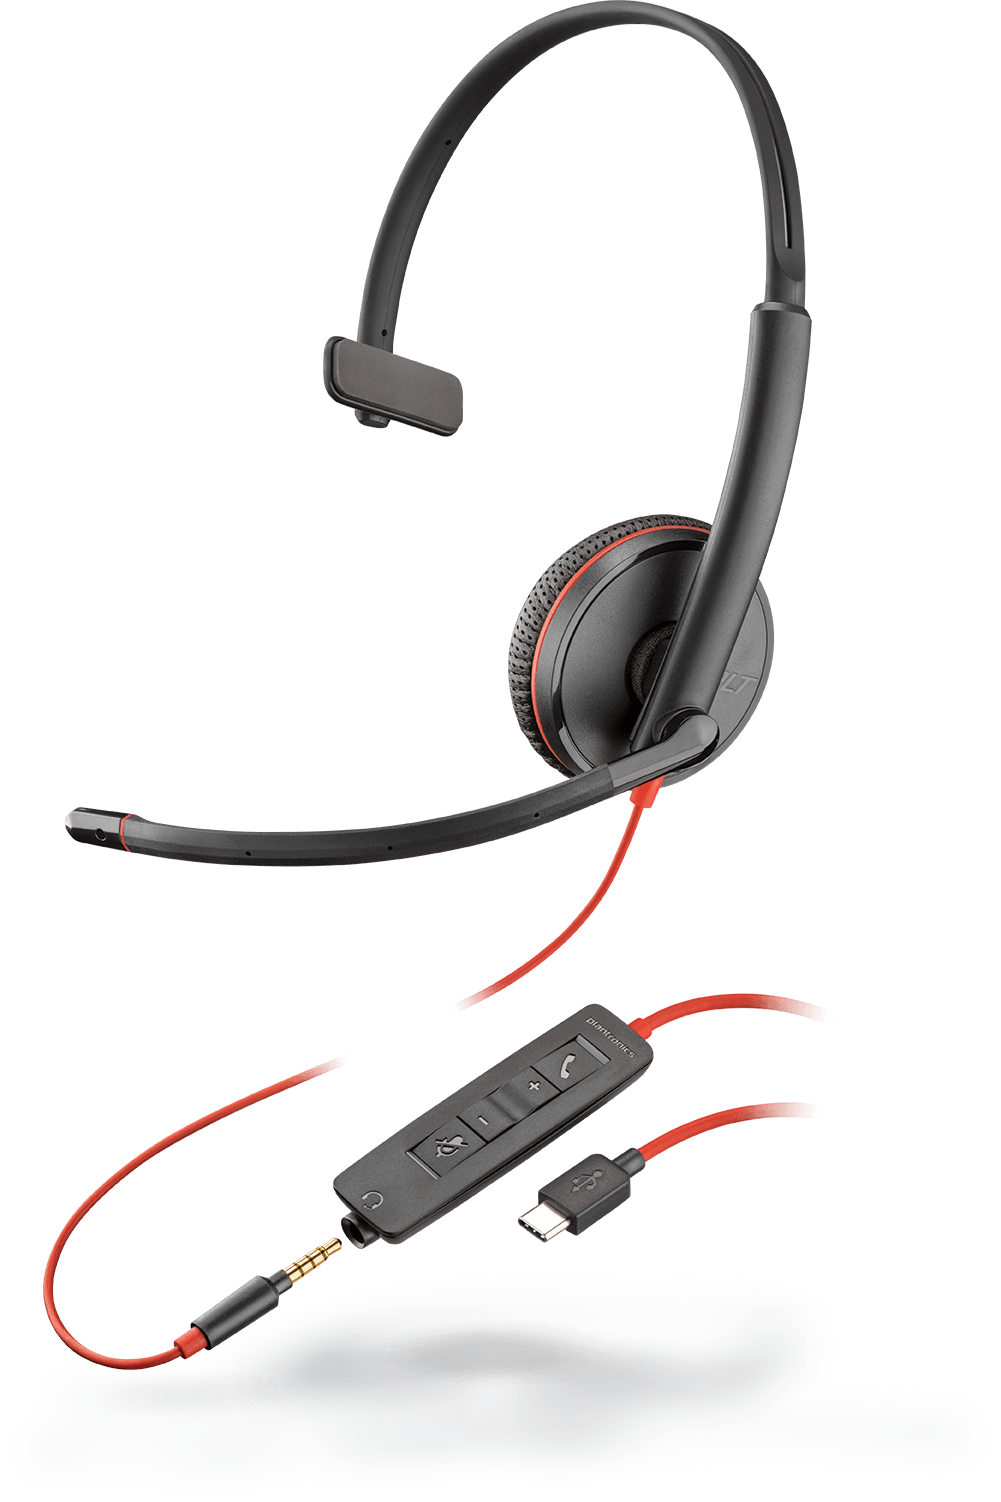 hight resolution of plantronics products headsets headphones and accessories plantronics